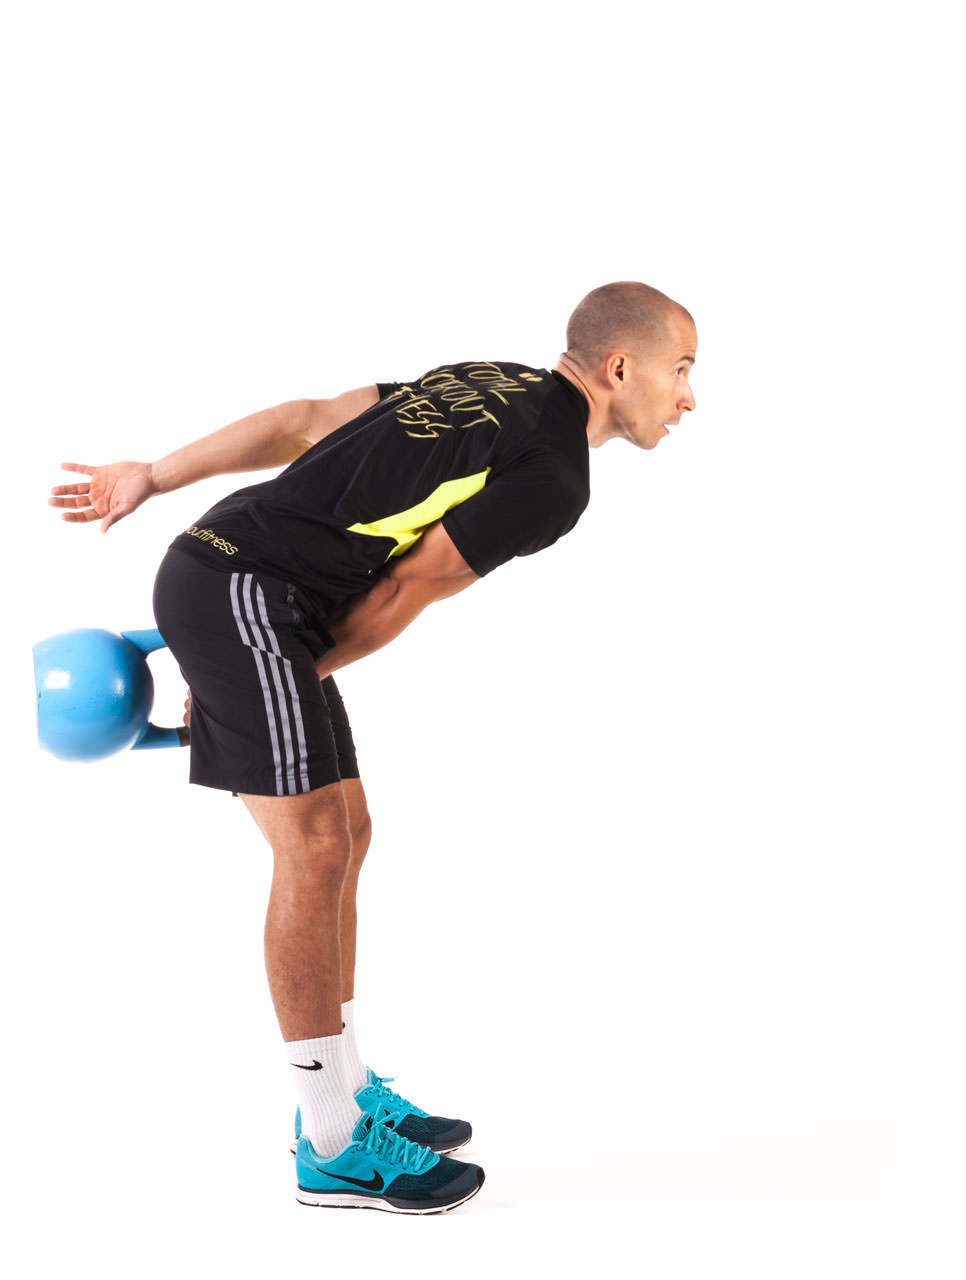 One-Arm Kettlebell Swing frame #6